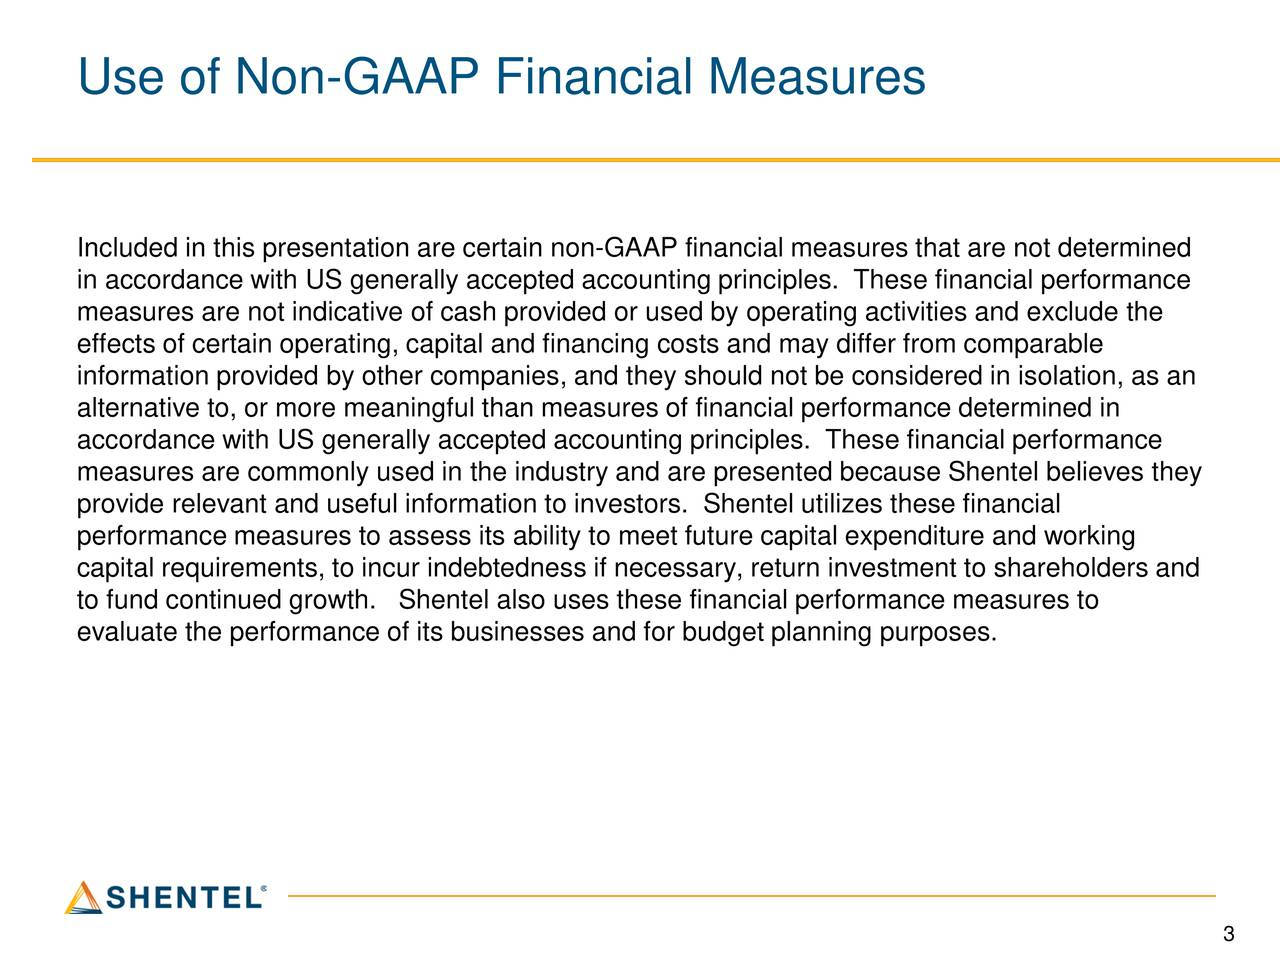 Included in this presentation are certain non-GAAP financial measures that are not determined in accordance with US generally accepted accounting principles. These financial performance measures are not indicative of cash provided or used by operating activities and exclude the effects of certain operating, capital and financing costs and may differ from comparable information provided by other companies, and they should not be considered in isolation, as an alternative to, or more meaningful than measures of financial performance determined in accordance with US generally accepted accounting principles. These financial performance measures are commonly used in the industry and are presented because Shentel believes they provide relevant and useful information to investors. Shentel utilizes these financial performance measures to assess its ability to meet future capital expenditure and working capital requirements, to incur indebtedness if necessary, return investment to shareholders and to fund continued growth. Shentel also uses these financial performance measures to evaluate the performance of its businesses and for budget planning purposes. 3